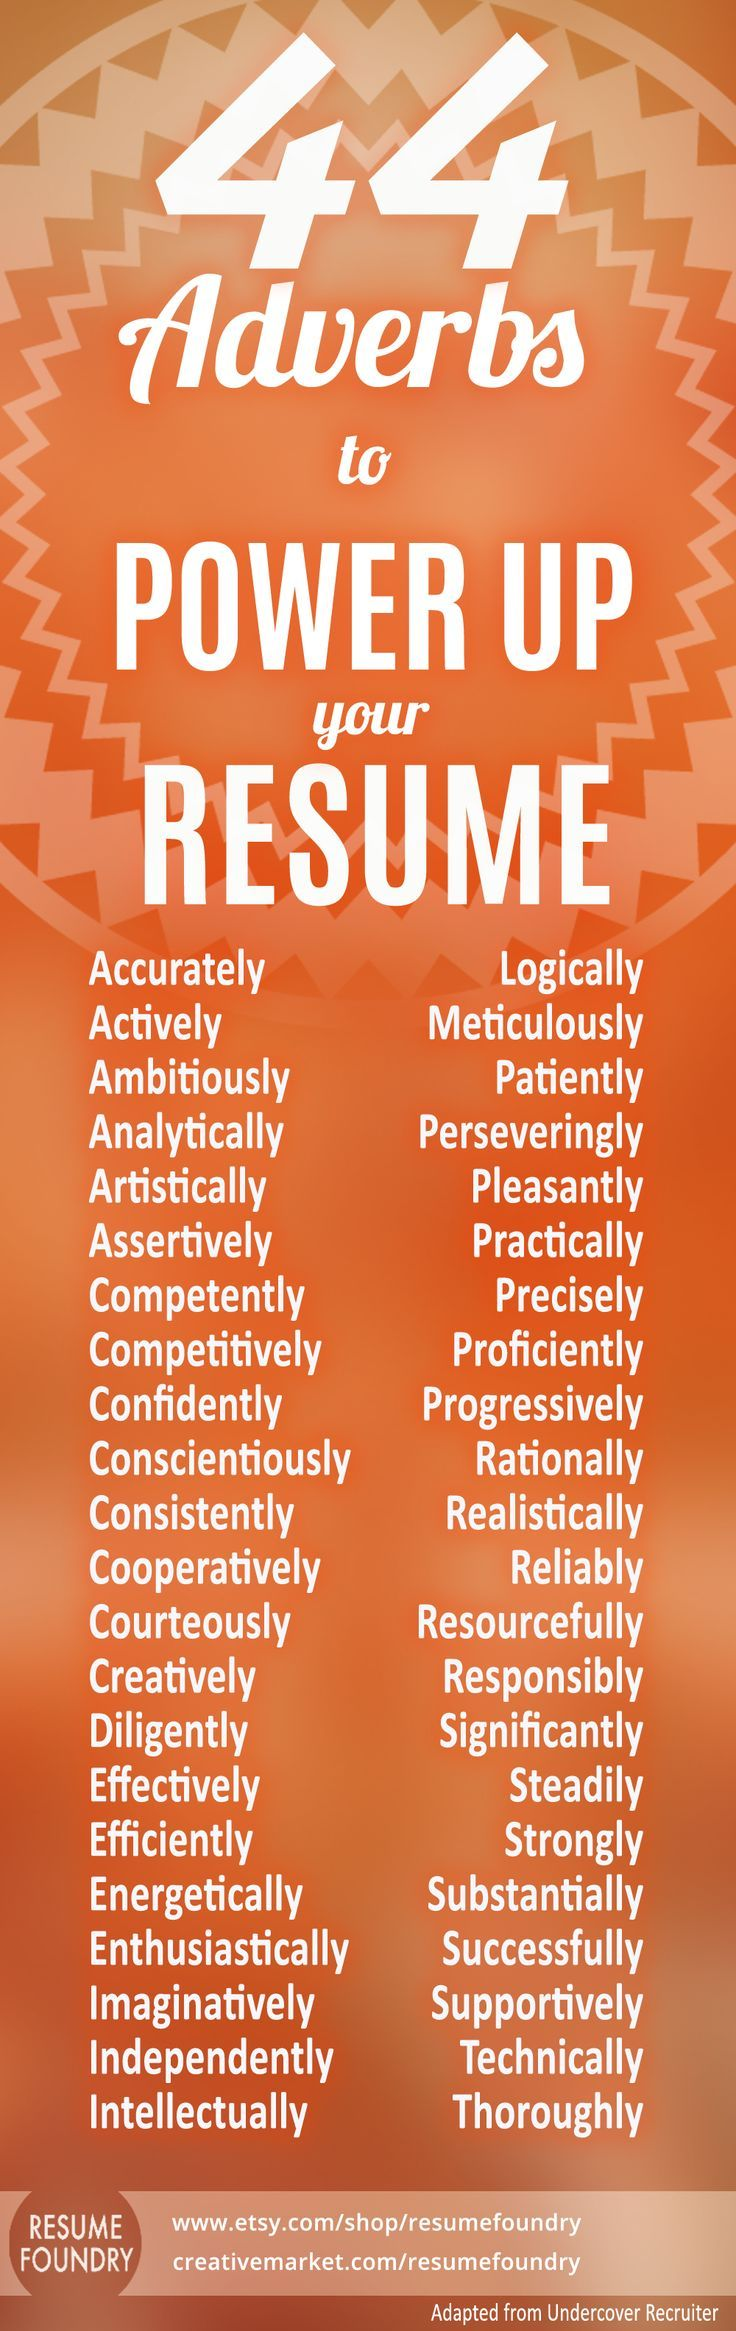 44 Adverbs To Power UP Your Resume Tips Keywords